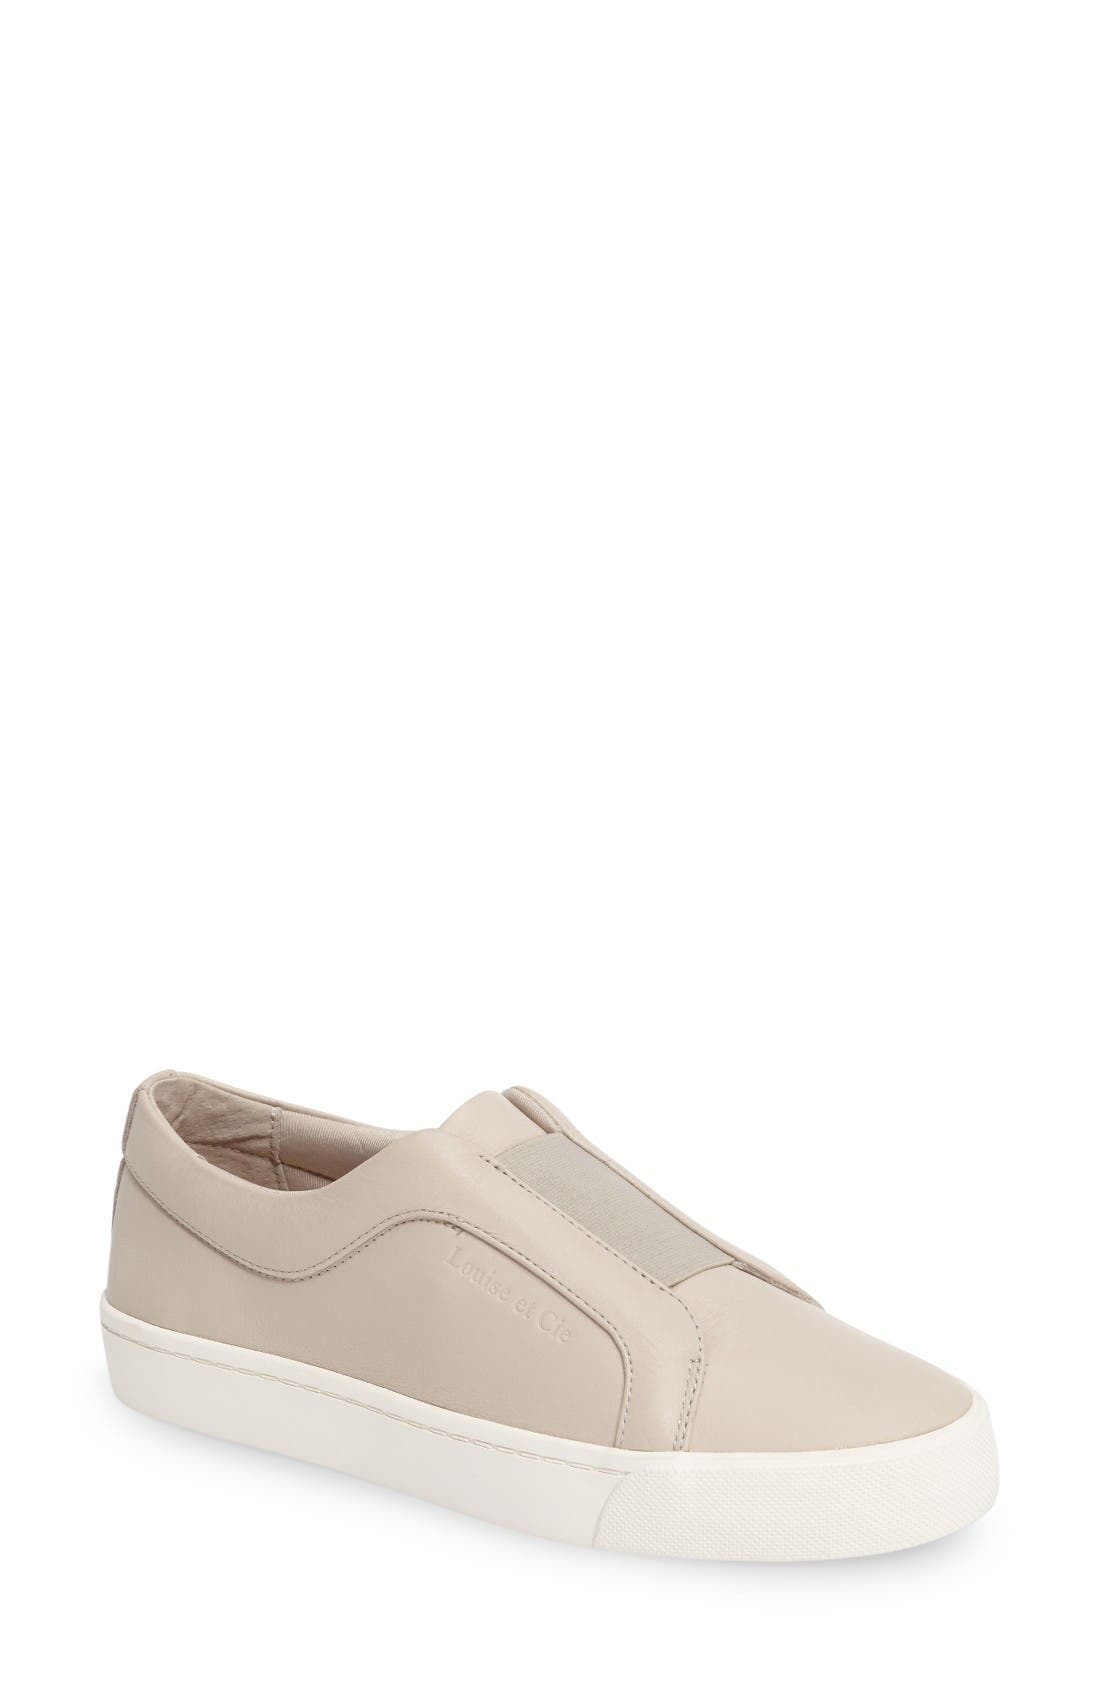 Louise et Cie Bette Slip-On Sneaker (Women)